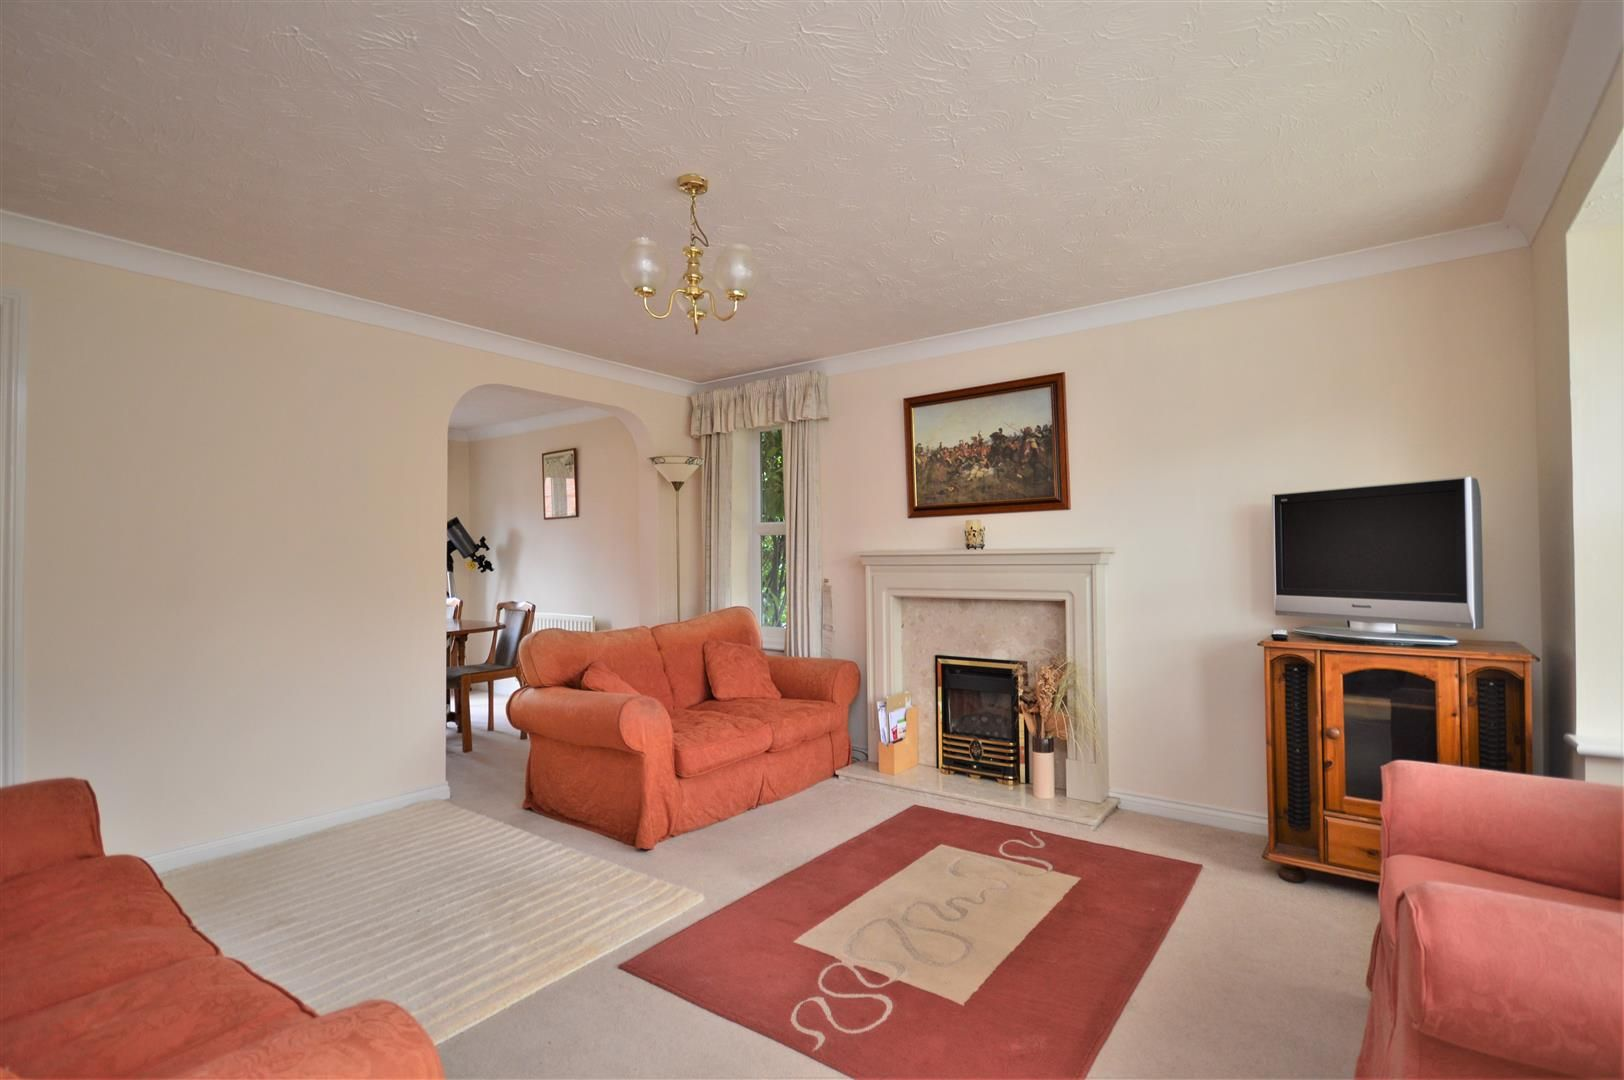 4 bed detached for sale in Belmont  - Property Image 2